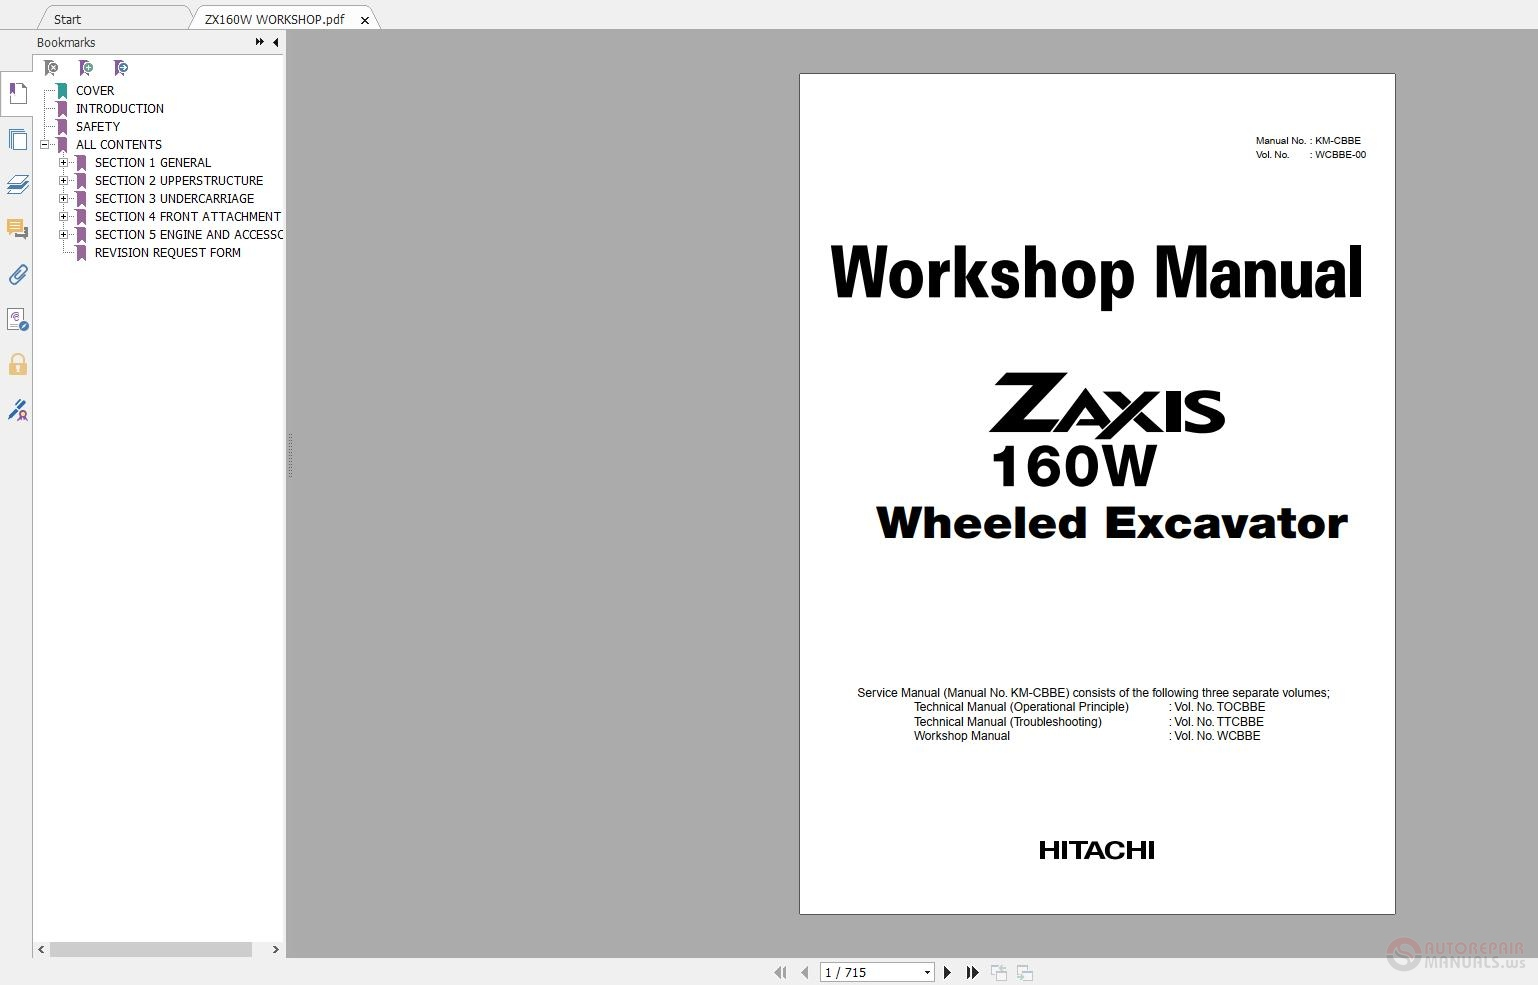 Autorepairsoftware  Hitachi Workshop Technical Manual And